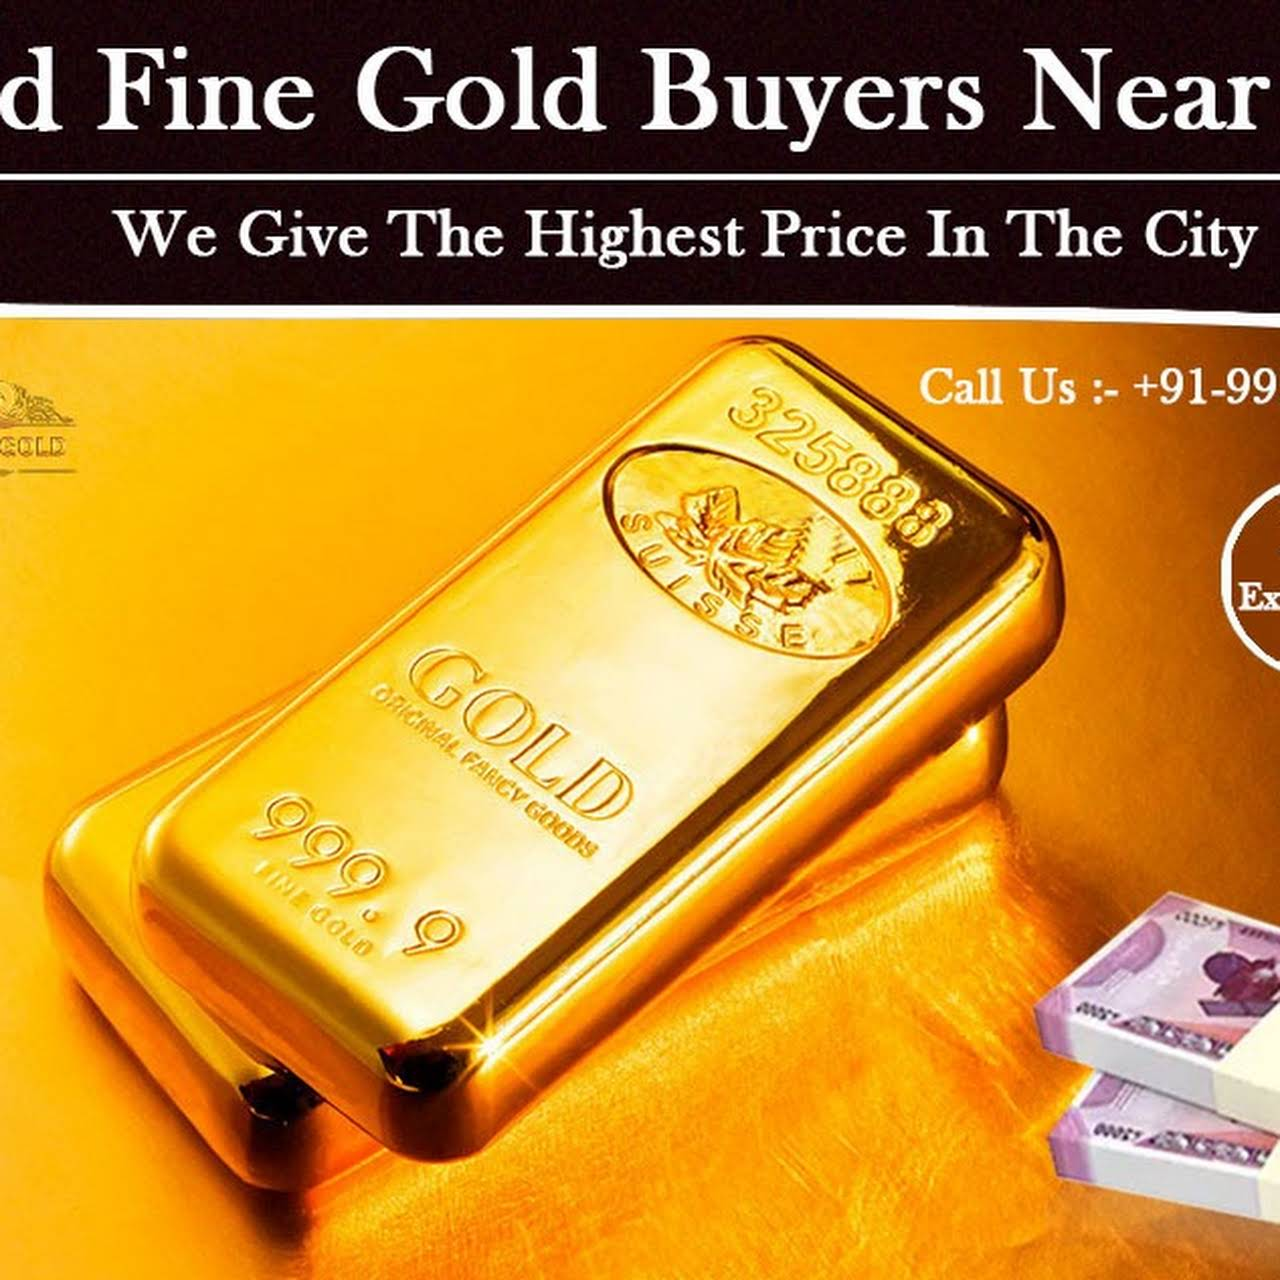 Cash For Gold (Cash For Gold In Jahangirpuri Delhi, Gold